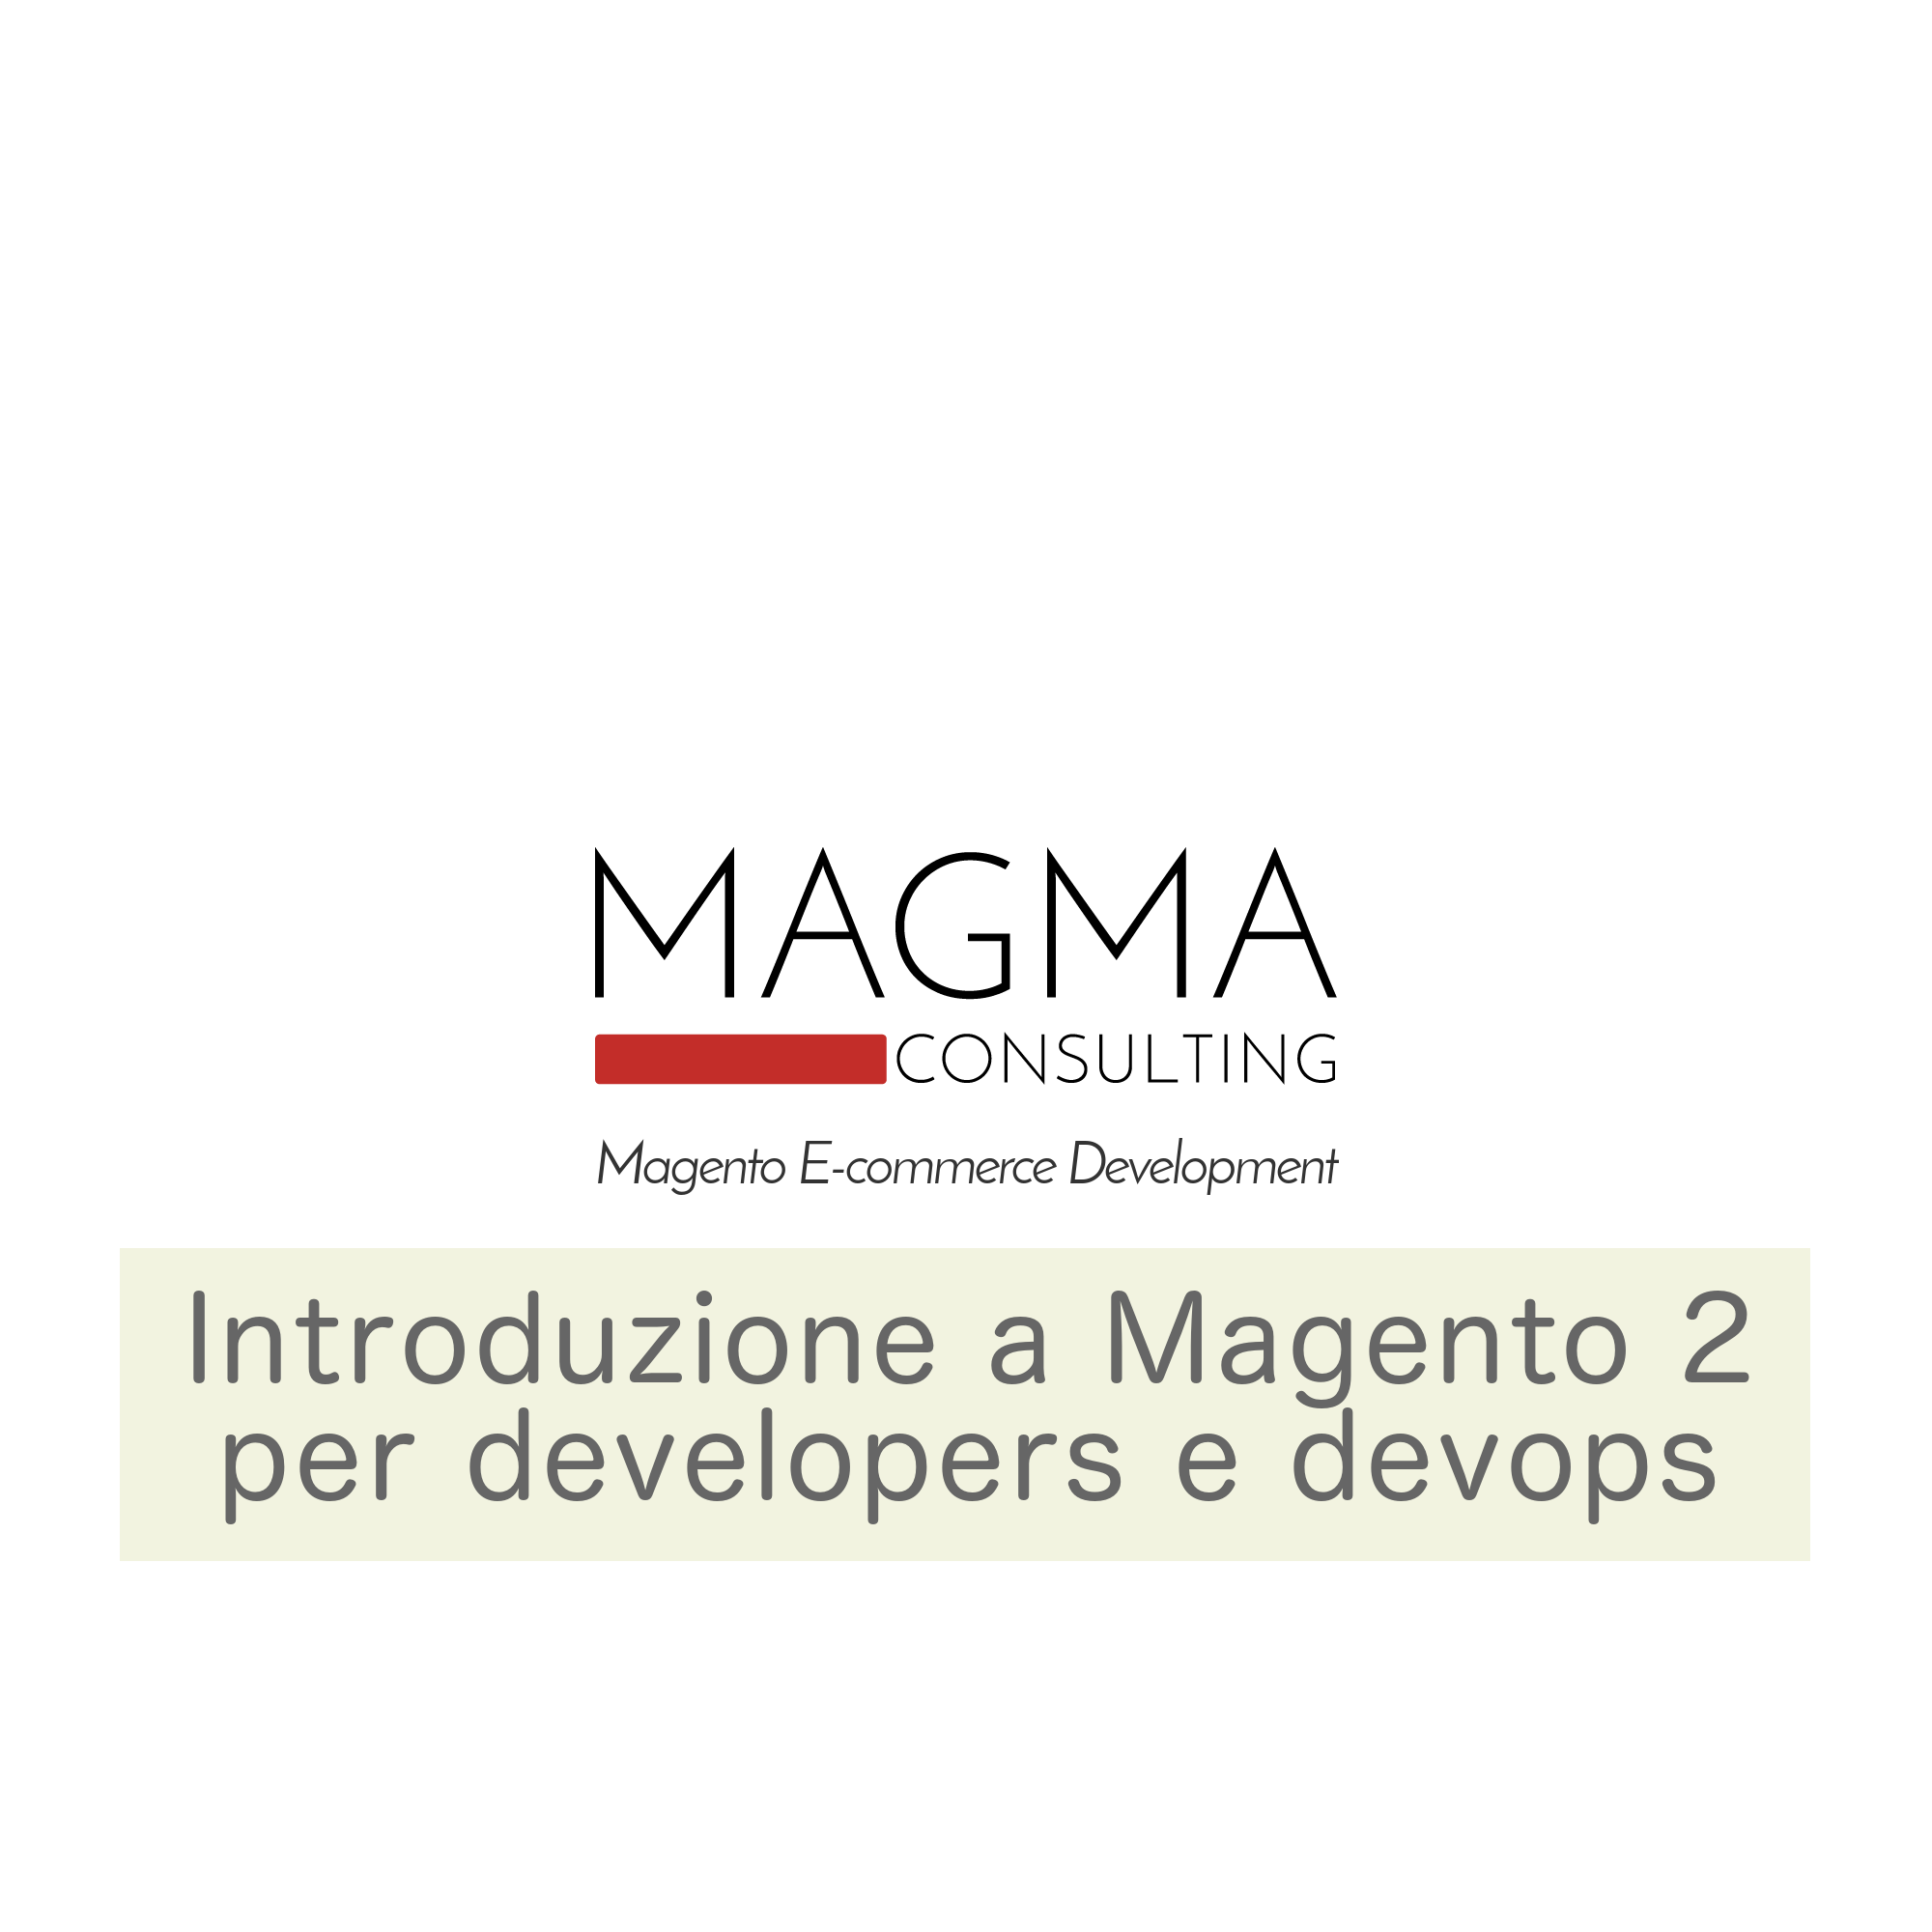 Introduzione a Magento 2 per developers e devops